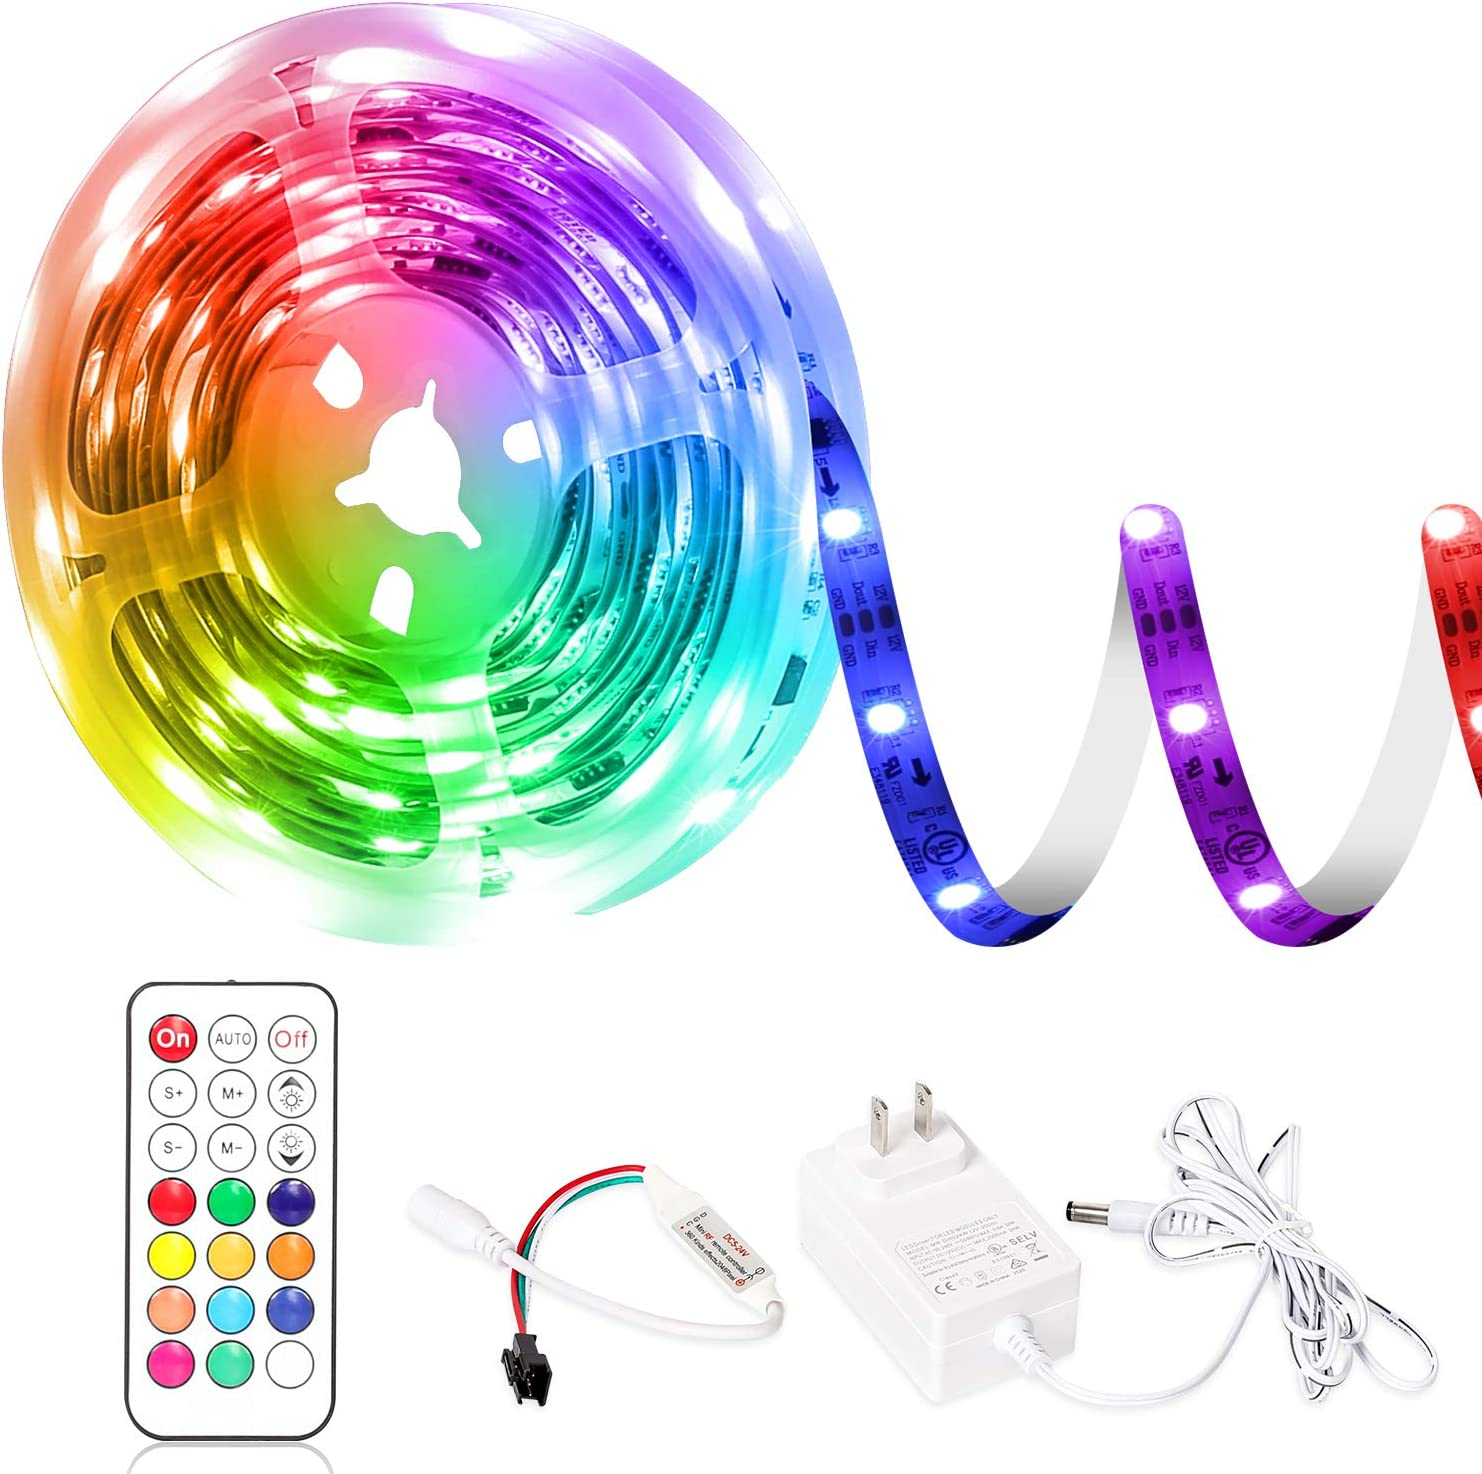 DreamColor LED Strip Lights,PAUTIX RGBIC 16.4ft Color Changing UL Listed Rainbow Light Strip Kit with Remote Controller for Home Bedroom Kitchen Party DIY Decoration